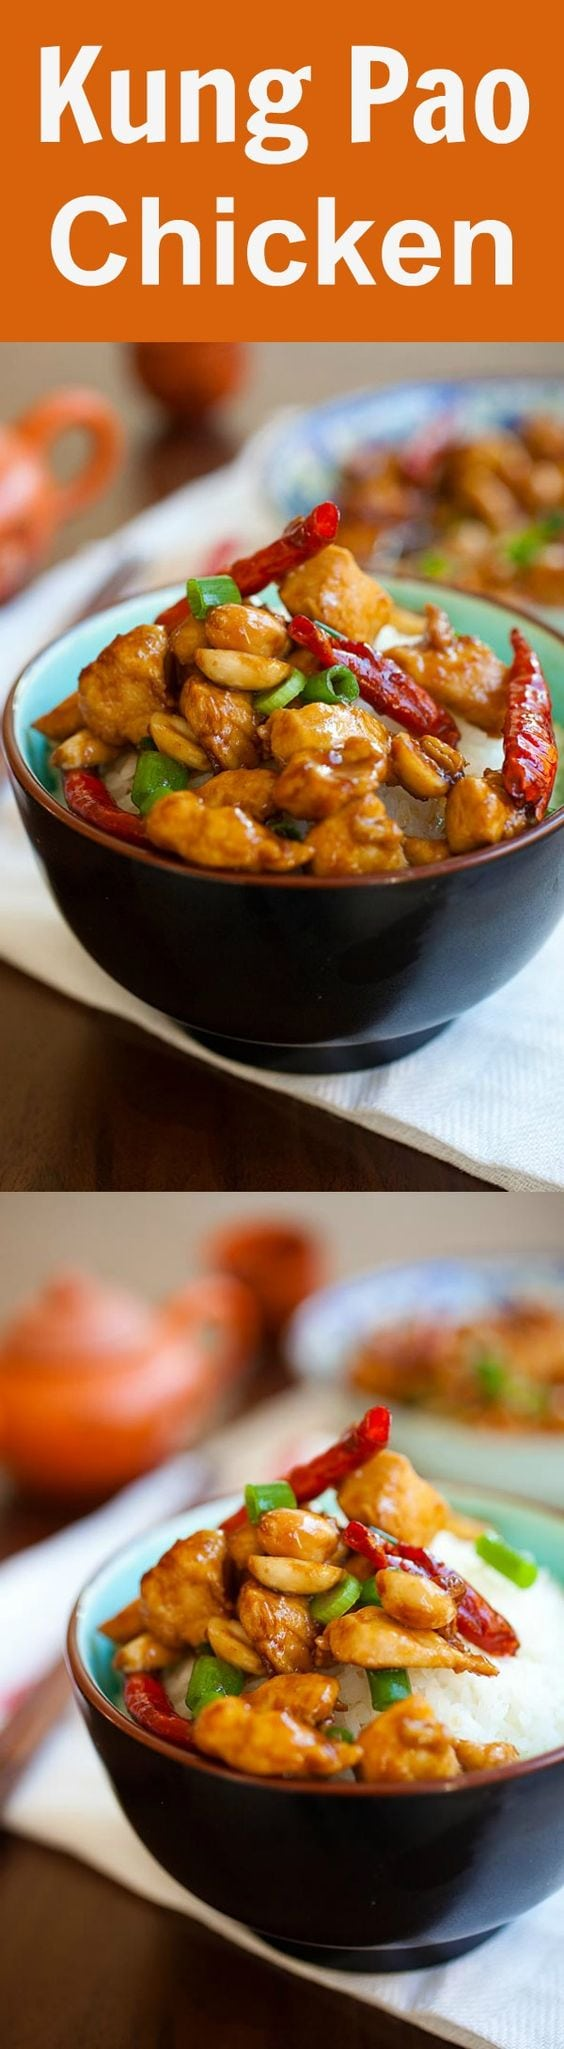 Kung Pao Chicken - healthy homemade Chinese chicken in savory and spicy Kung Pao sauce. Best Kung Pao Chicken recipe ever, much better than takeout| rasamalaysia.com